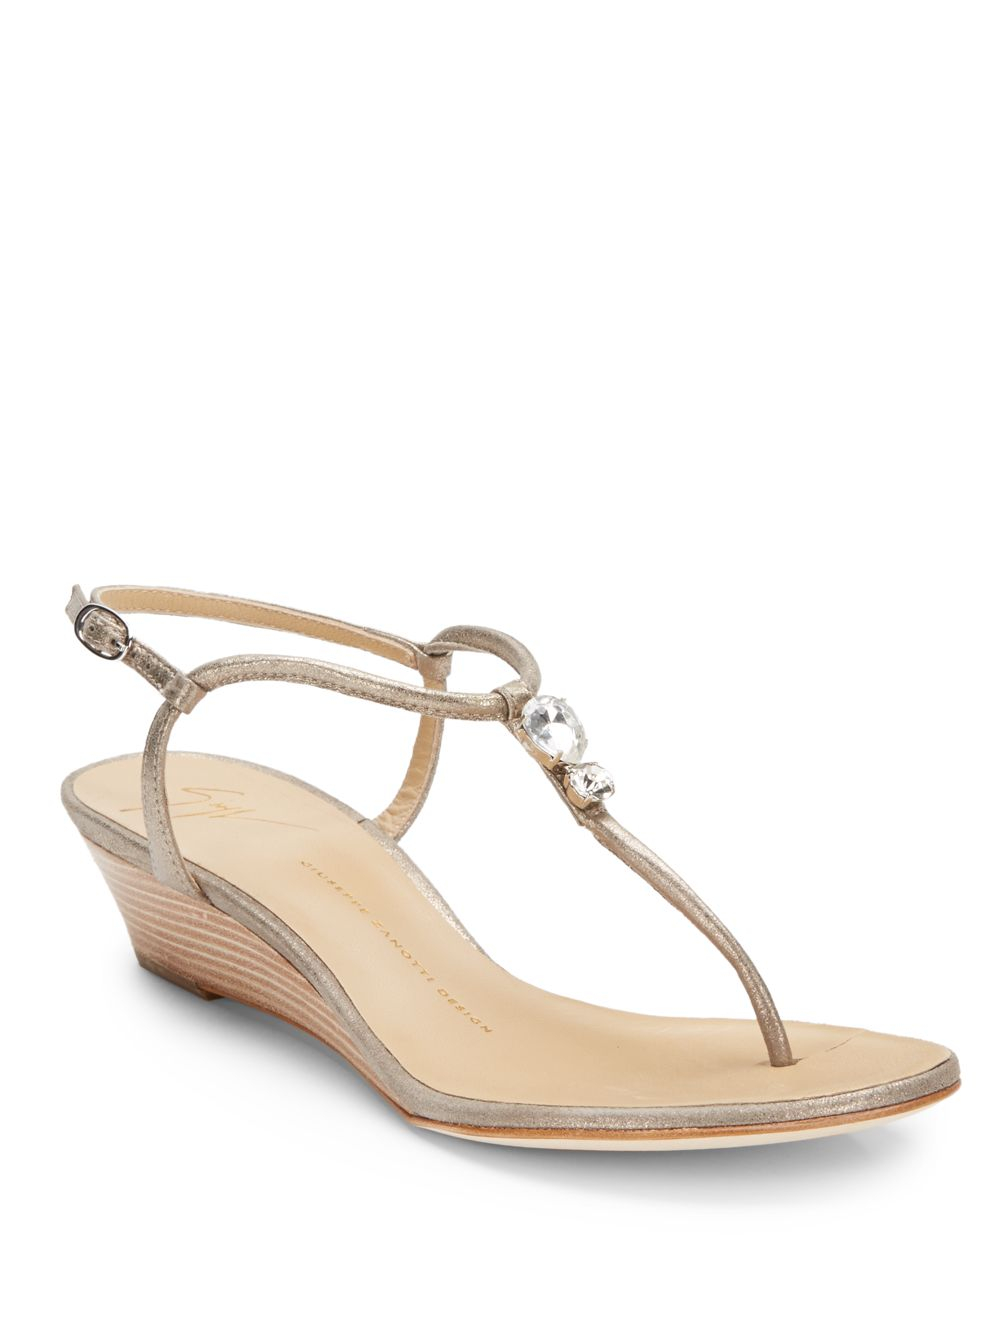 414e9cb8da95a8 Lyst - Giuseppe Zanotti Jeweled Low Wedge Thong Sandals in Natural